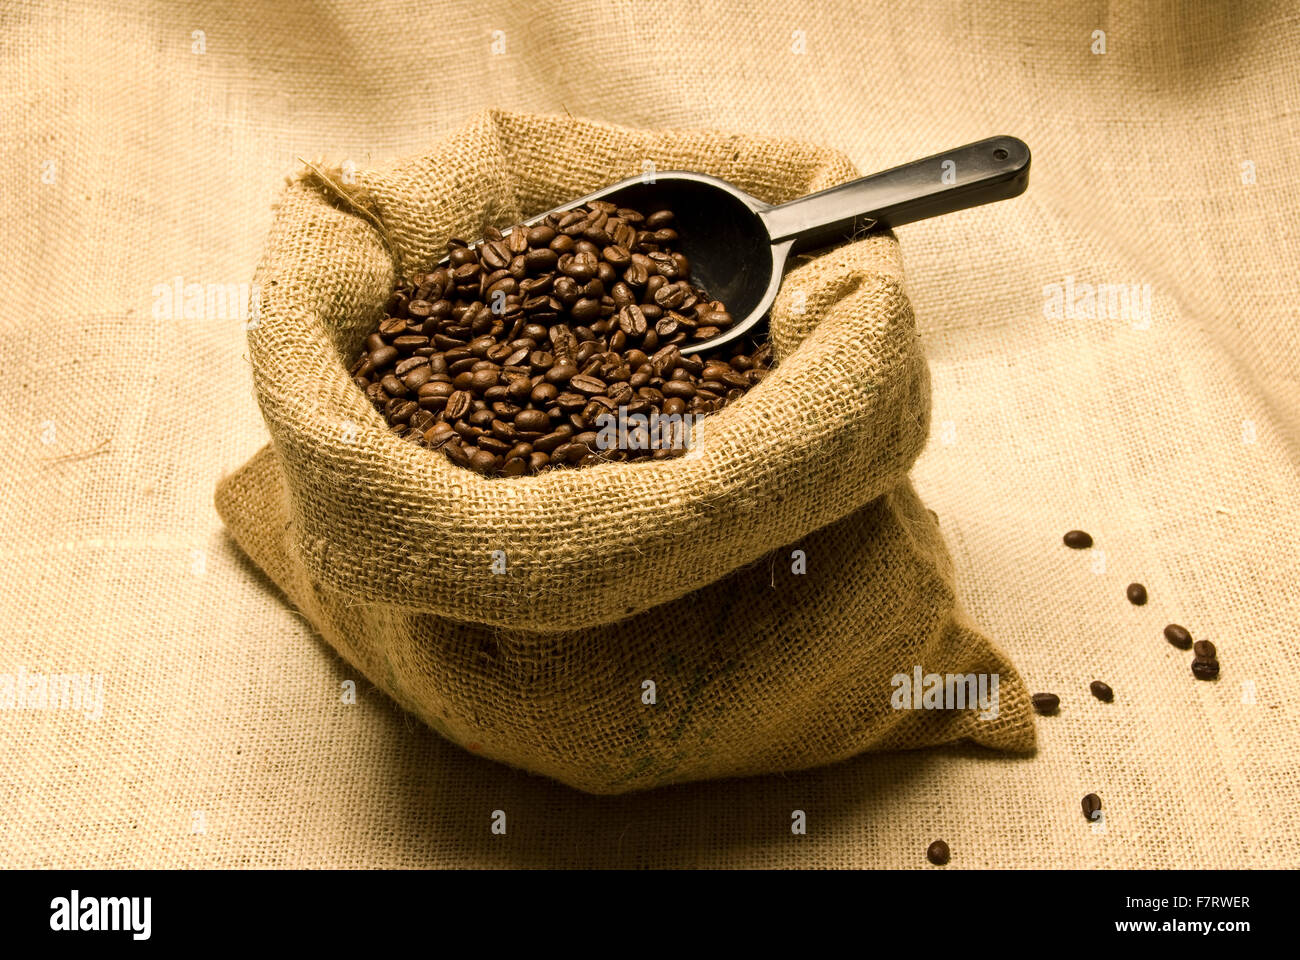 Coffee Beans in Burlap Bag With Scoop In It - Stock Image